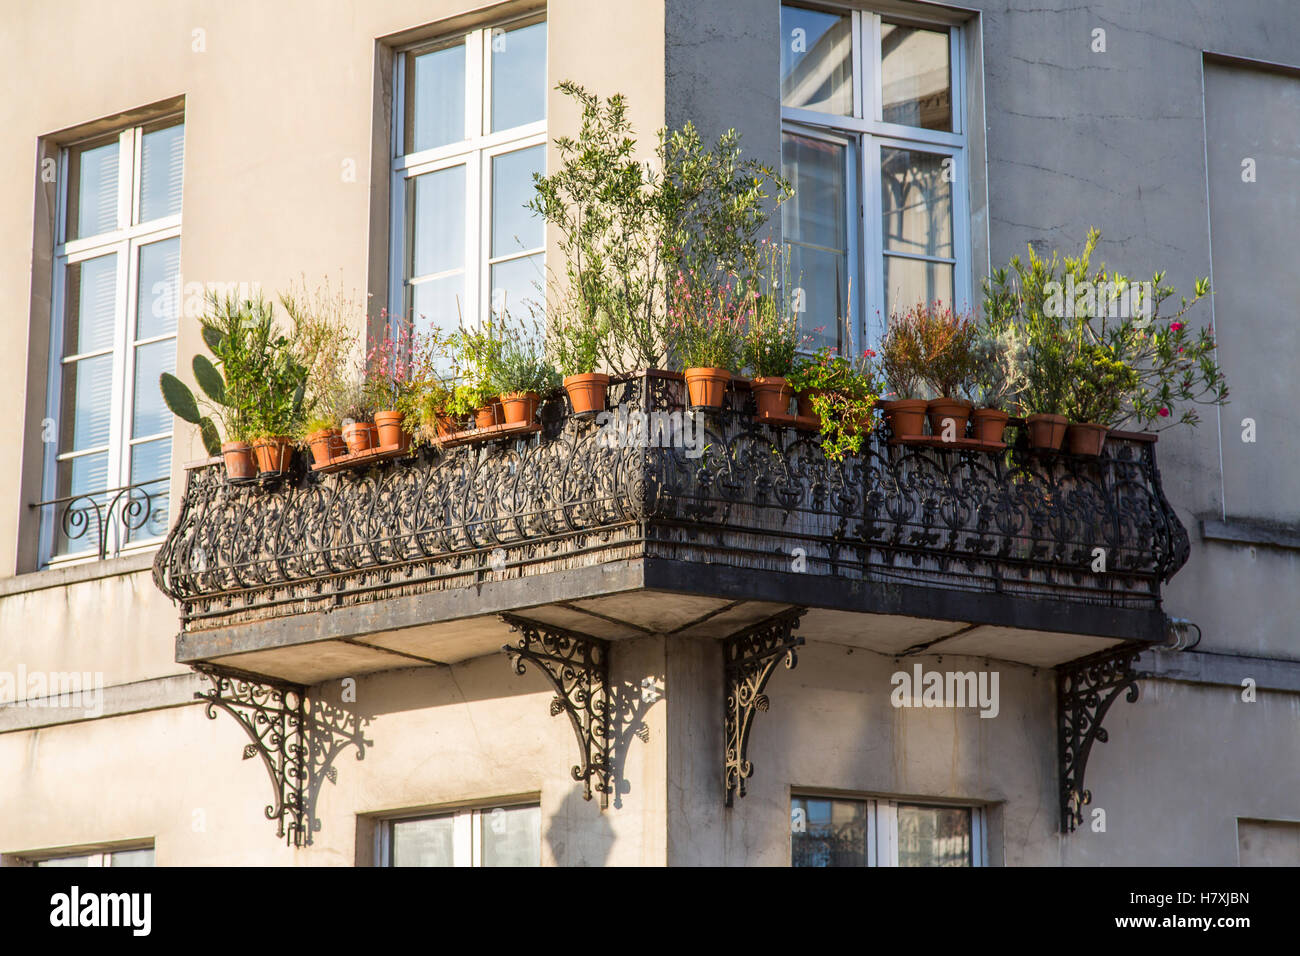 Brussels, Belgium, balcony with many potted plants, - Stock Image